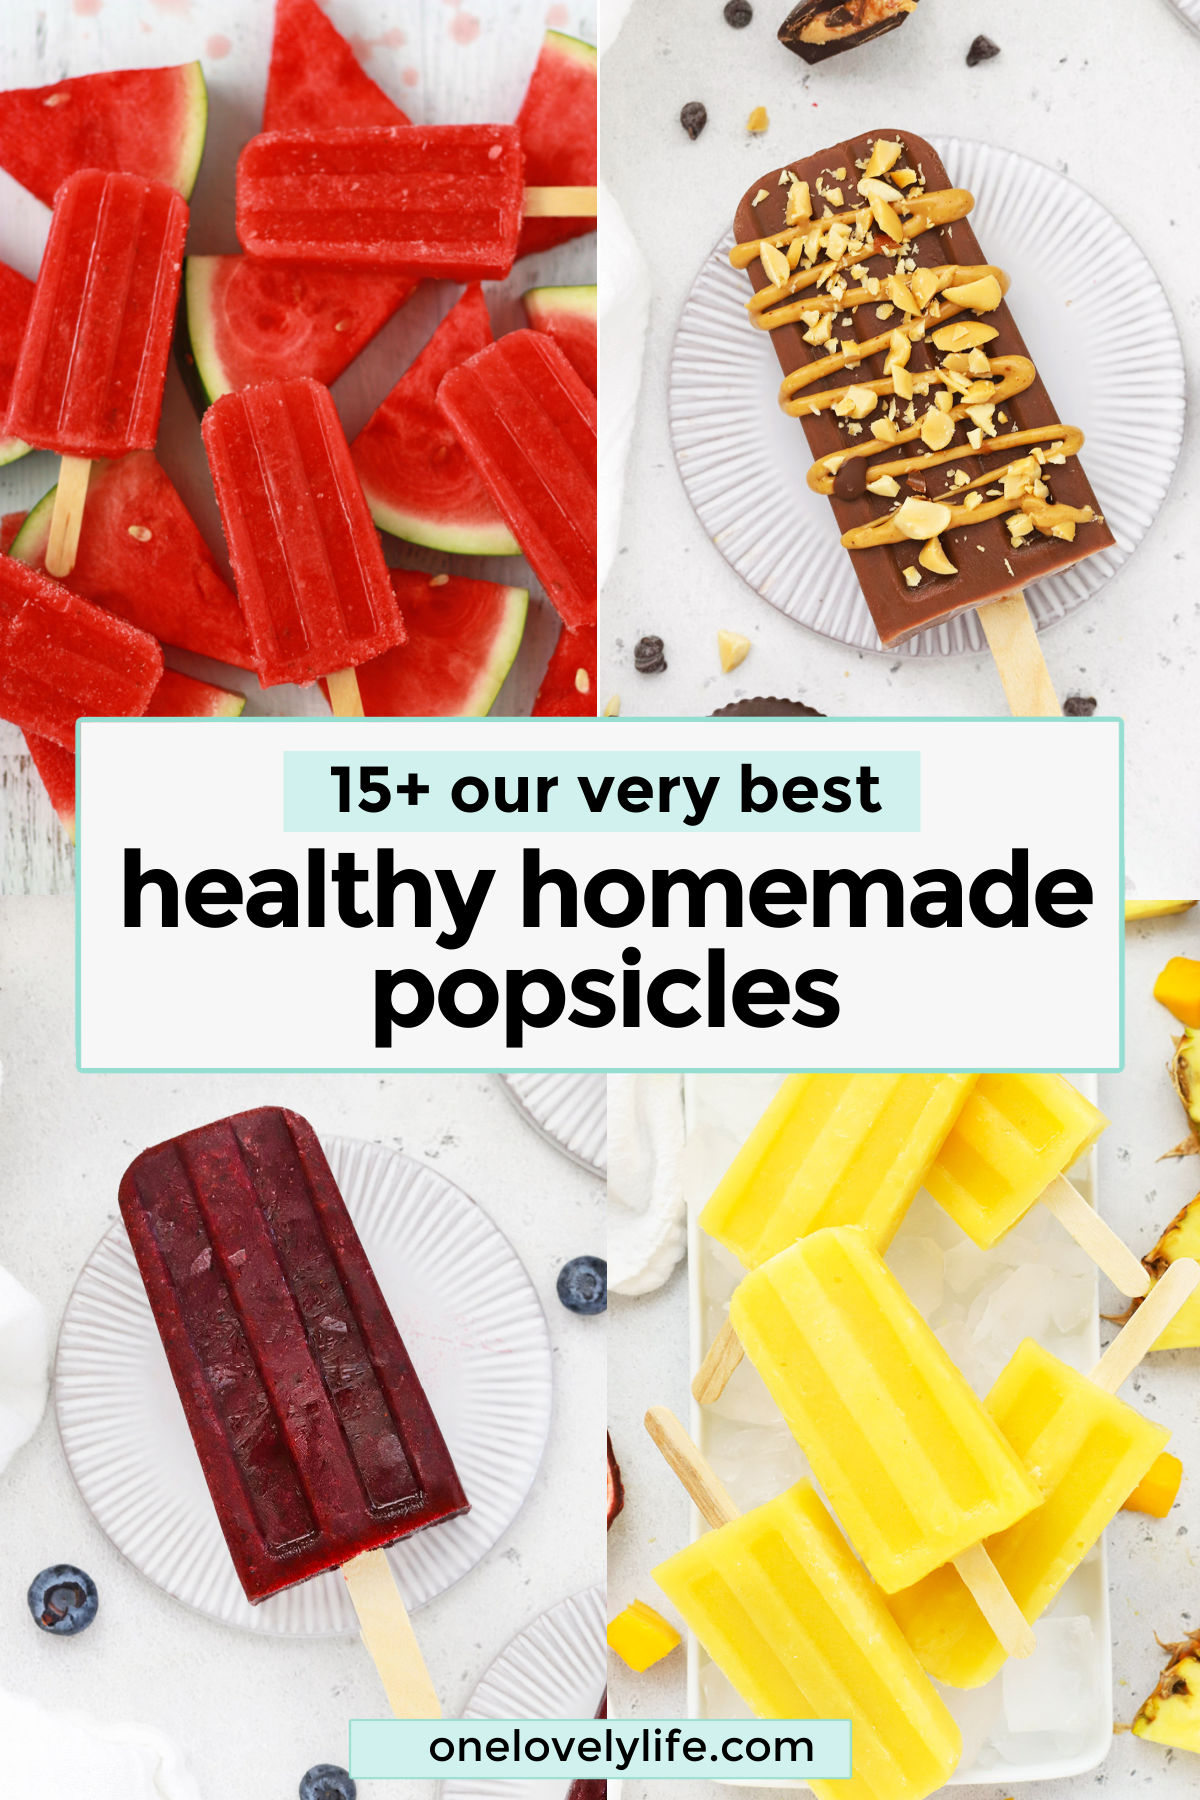 The BEST Healthy Homemade Popsicles - Some of the BEST healthy popsicle recipes on the net! (Naturally-sweetened, gluten-free & dairy-free!) // Homemade Popsicle Recipe // Healthy Popsicles // Vegan Popsicles // Paleo Popsicles // Healthy Ice Pops